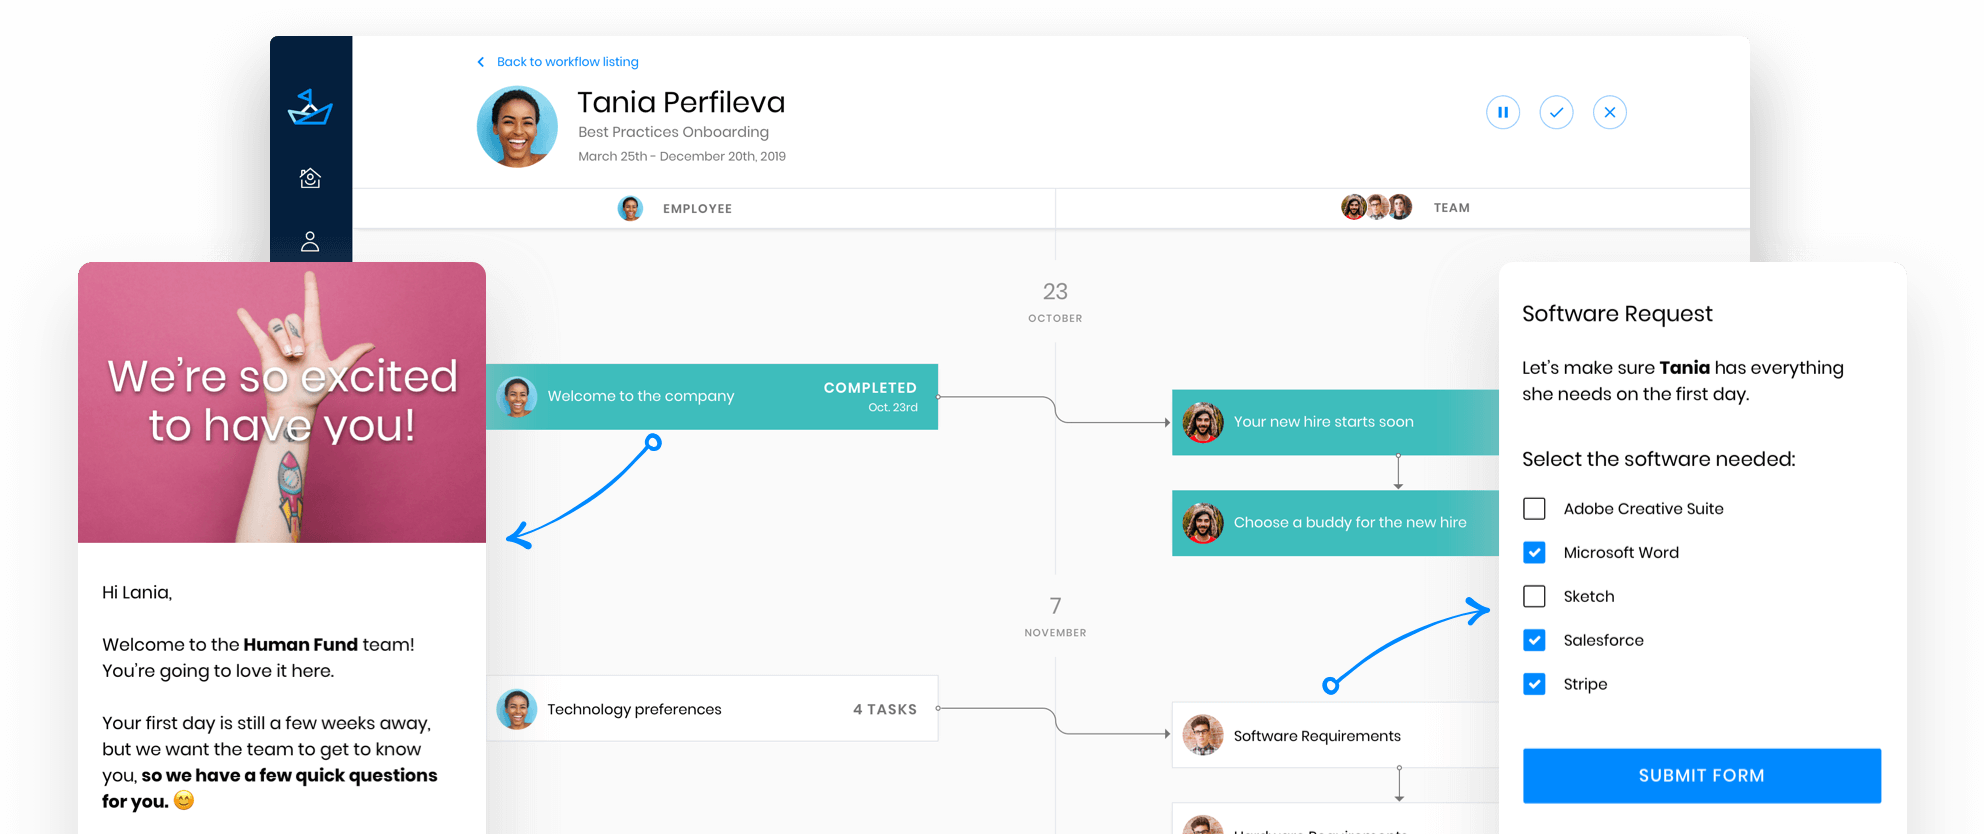 Onboarding workflow welcoming new employee.  Showing excitement to have new employee, tech request setup, and timeline of actions for the new hire.